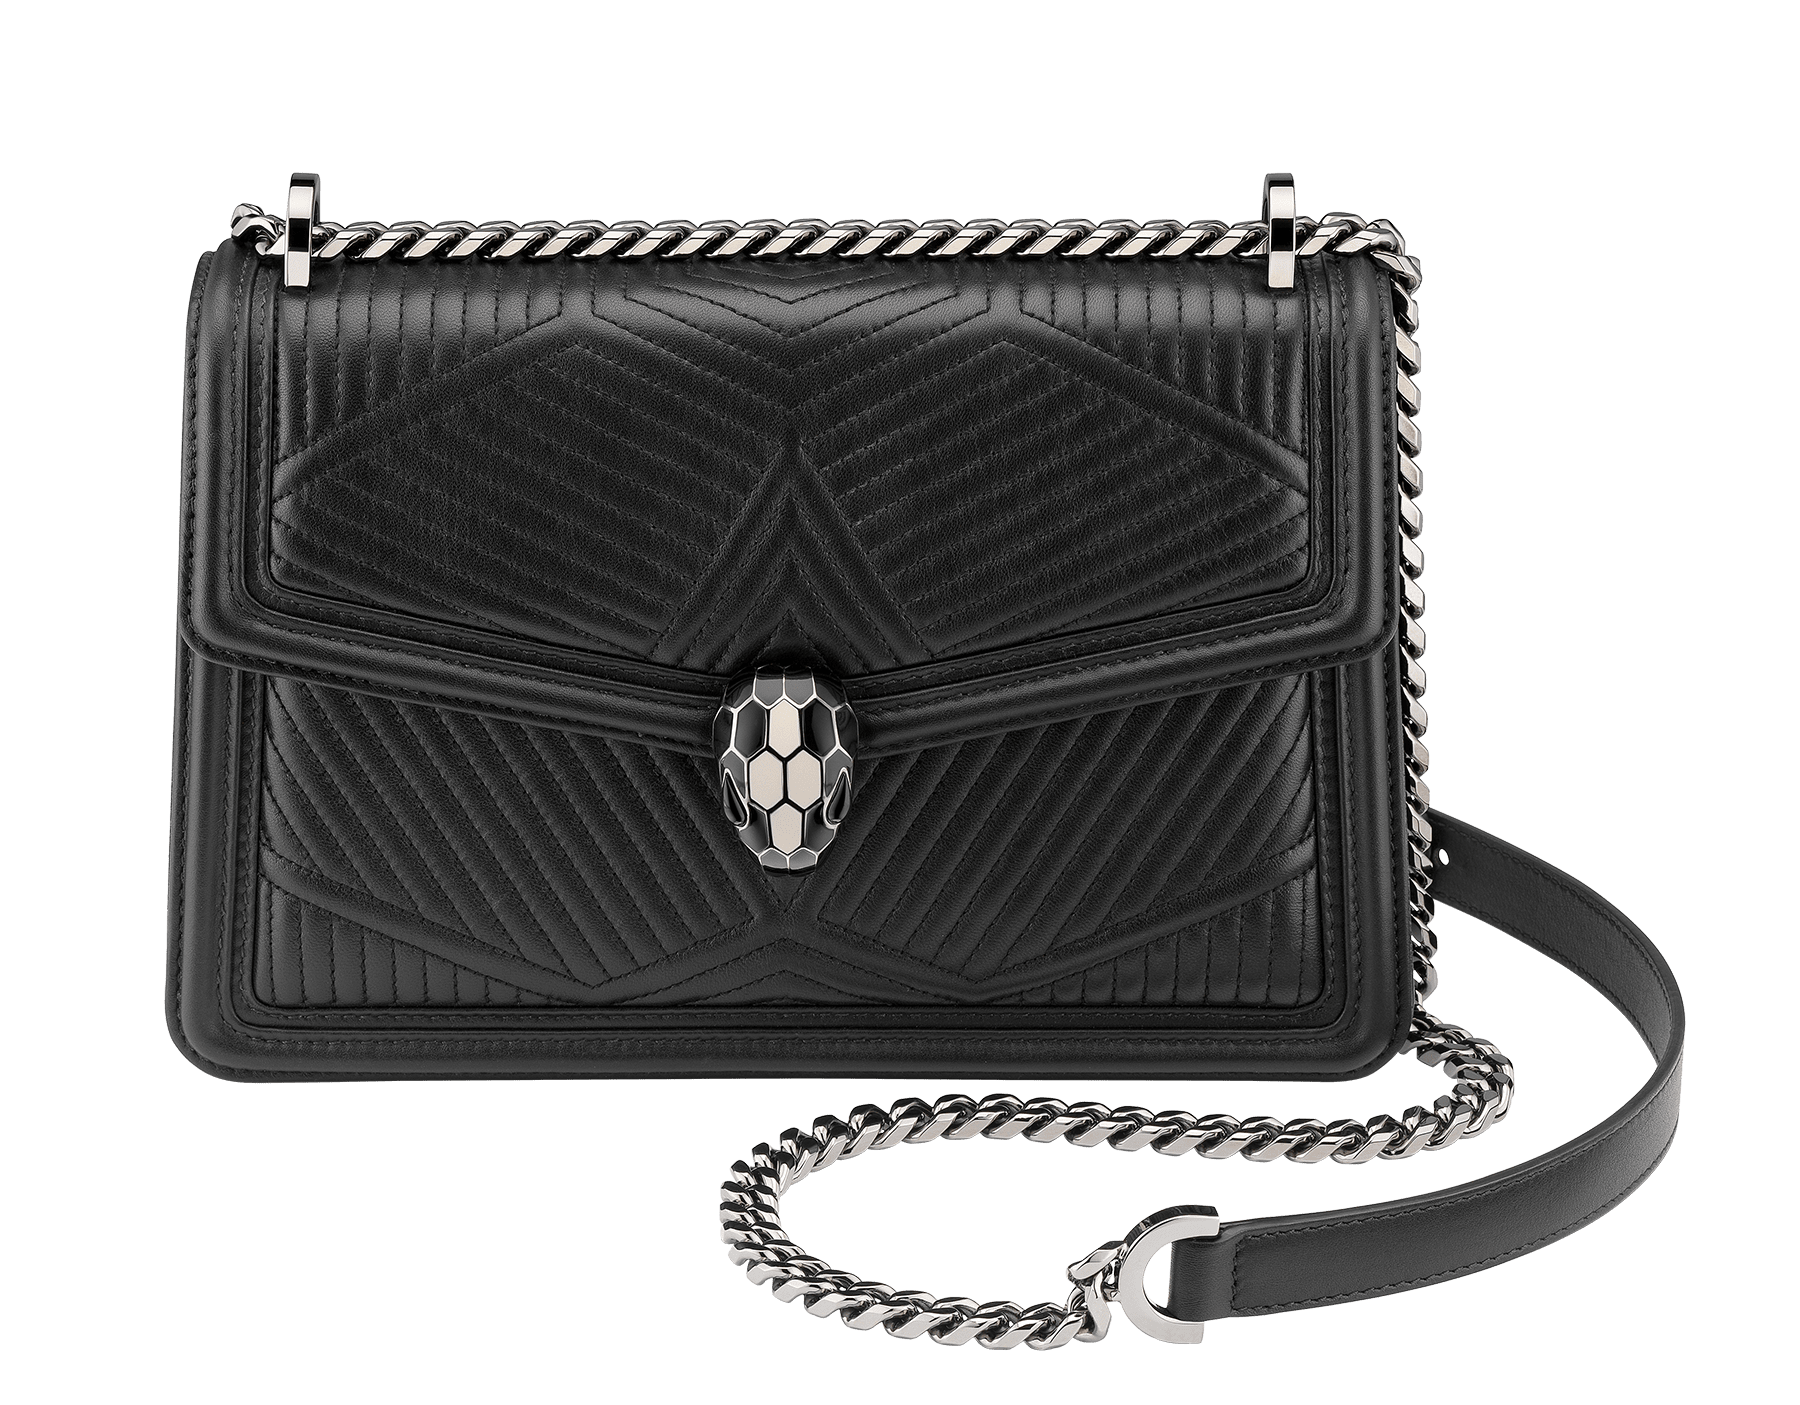 """Serpenti Diamond Blast"" shoulder bag in black quilted nappa leather body and black calf leather frames. Iconic snakehead closure in dark ruthenium plated brass enriched with black and white enamel and black onyx eyes. 287371 image 1"